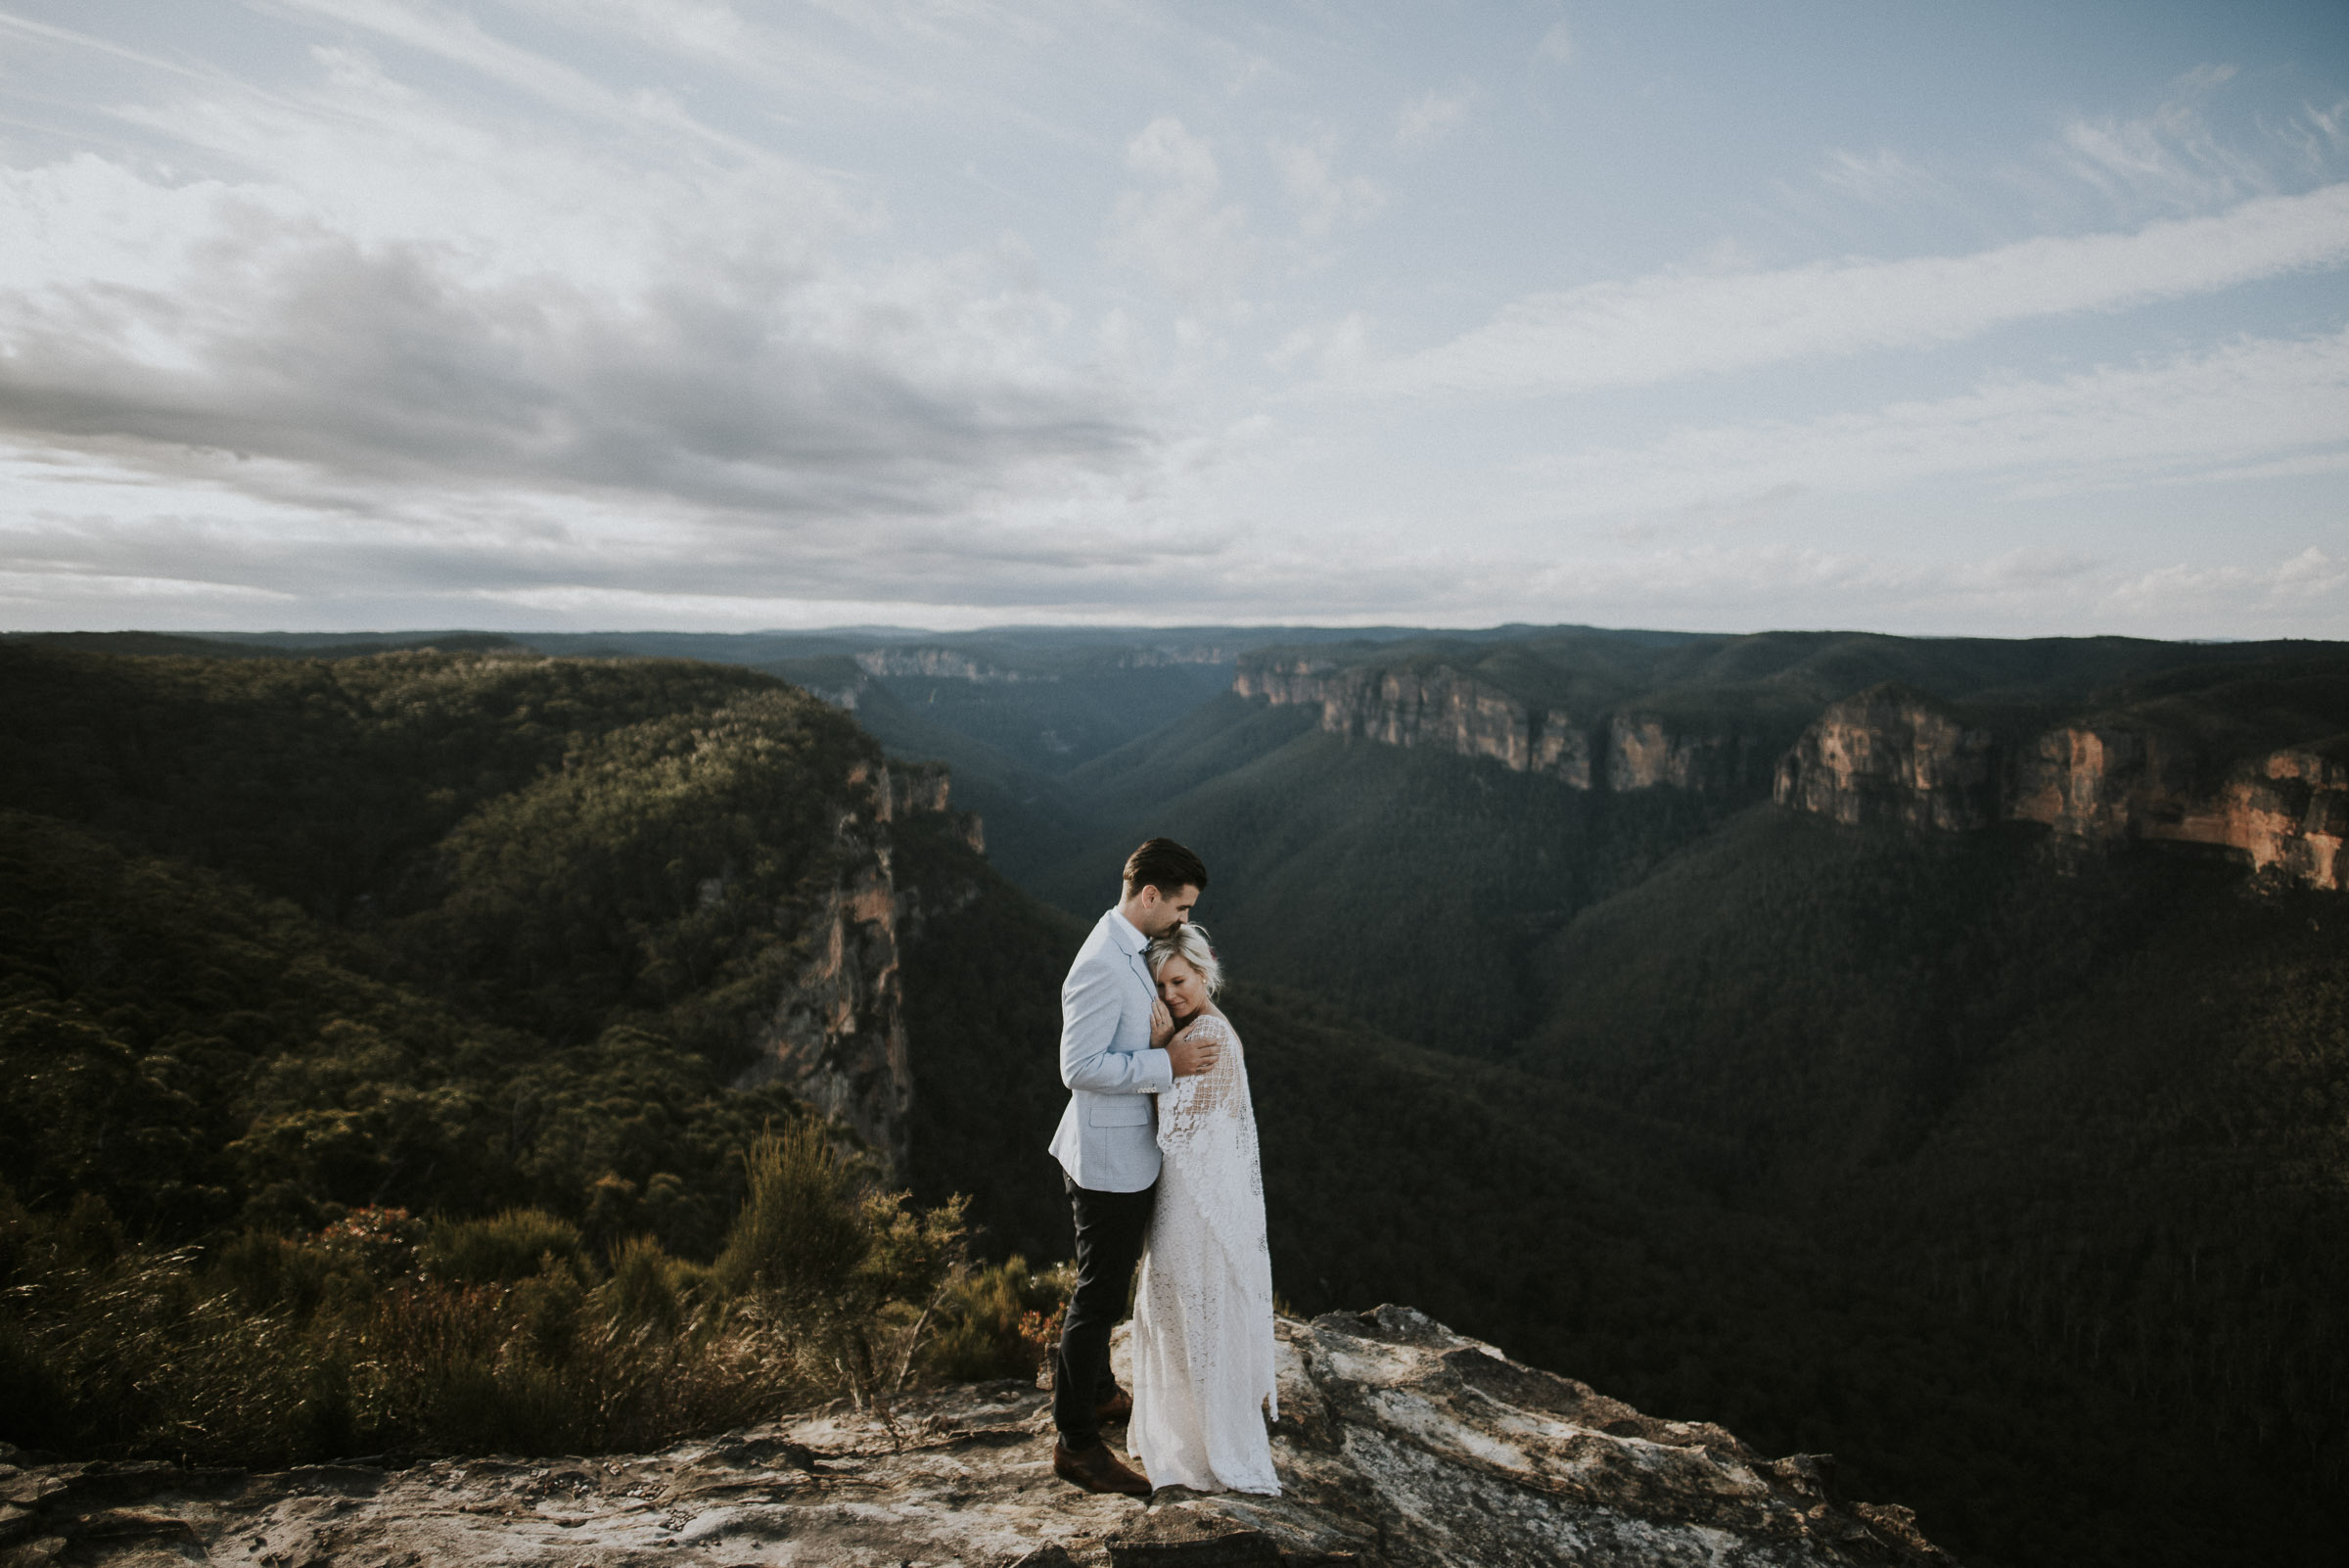 Amber_Johnny_Blue_Mountains_Elopement_Anteloping-57.jpg